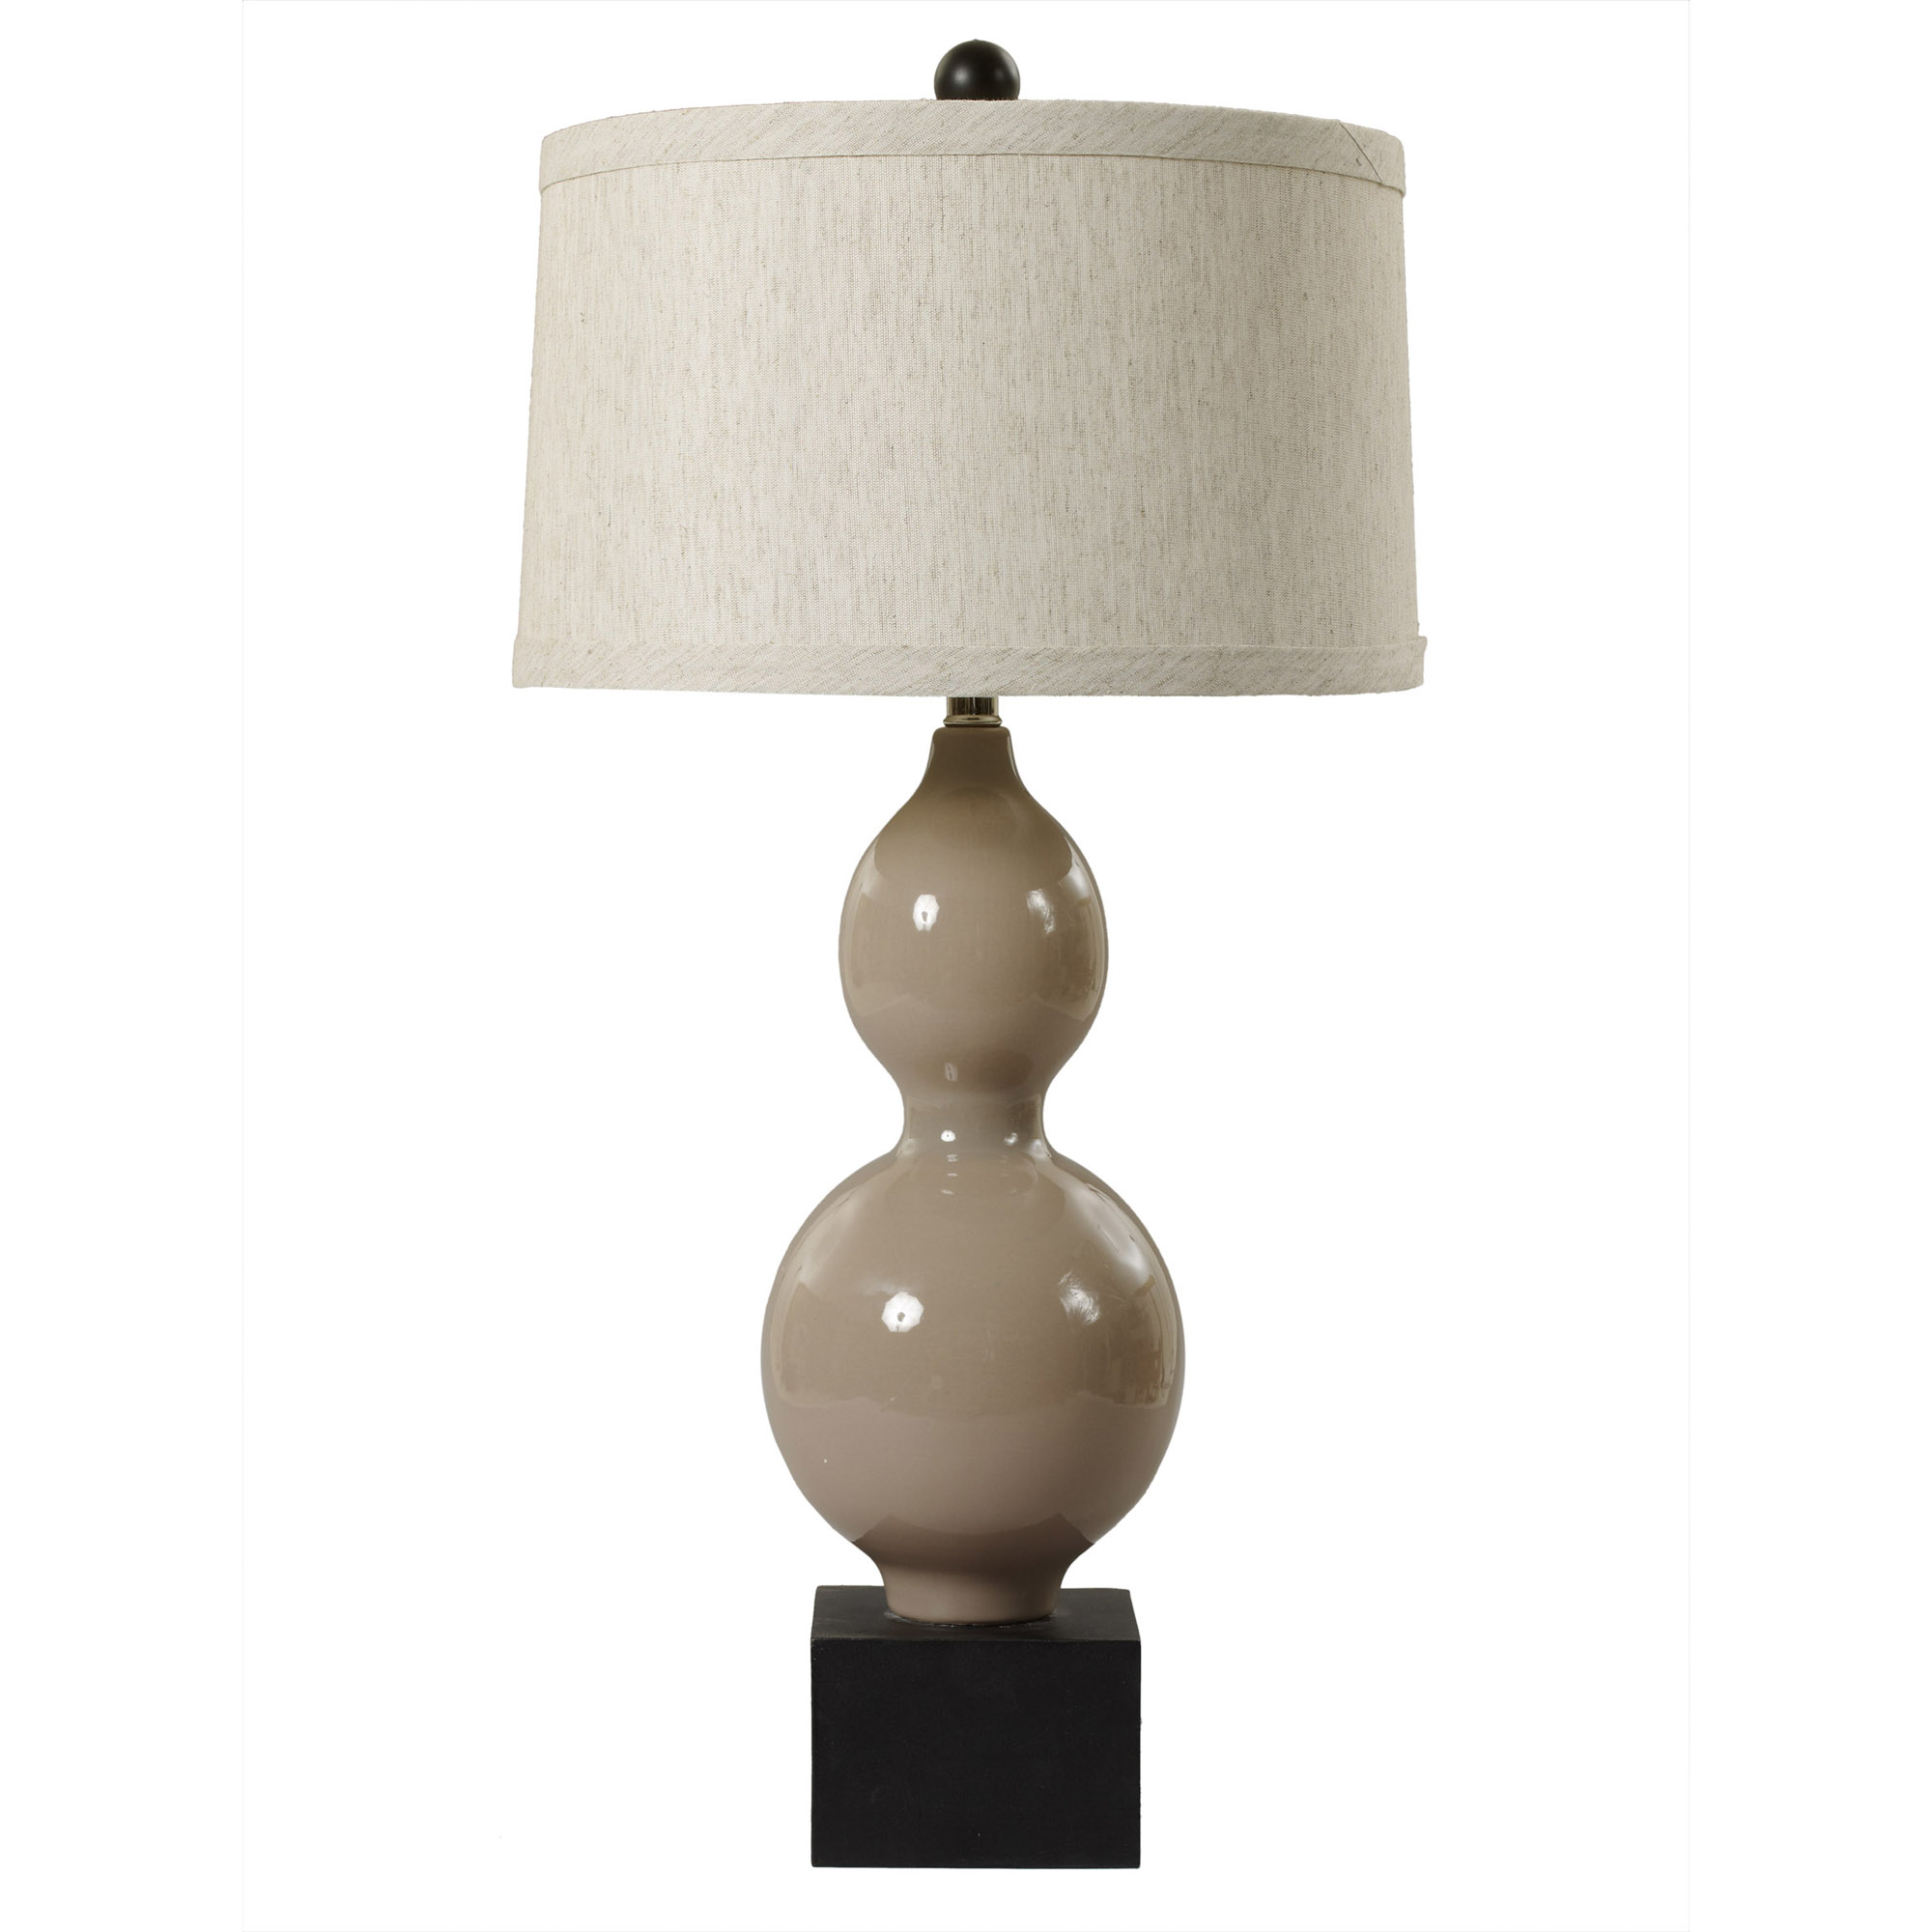 Fangio Lighting's #8735 30 in. Elongated Stacked Gourd With Pedestal Base Ceramic Table Lamp in a Warm Grey Finish